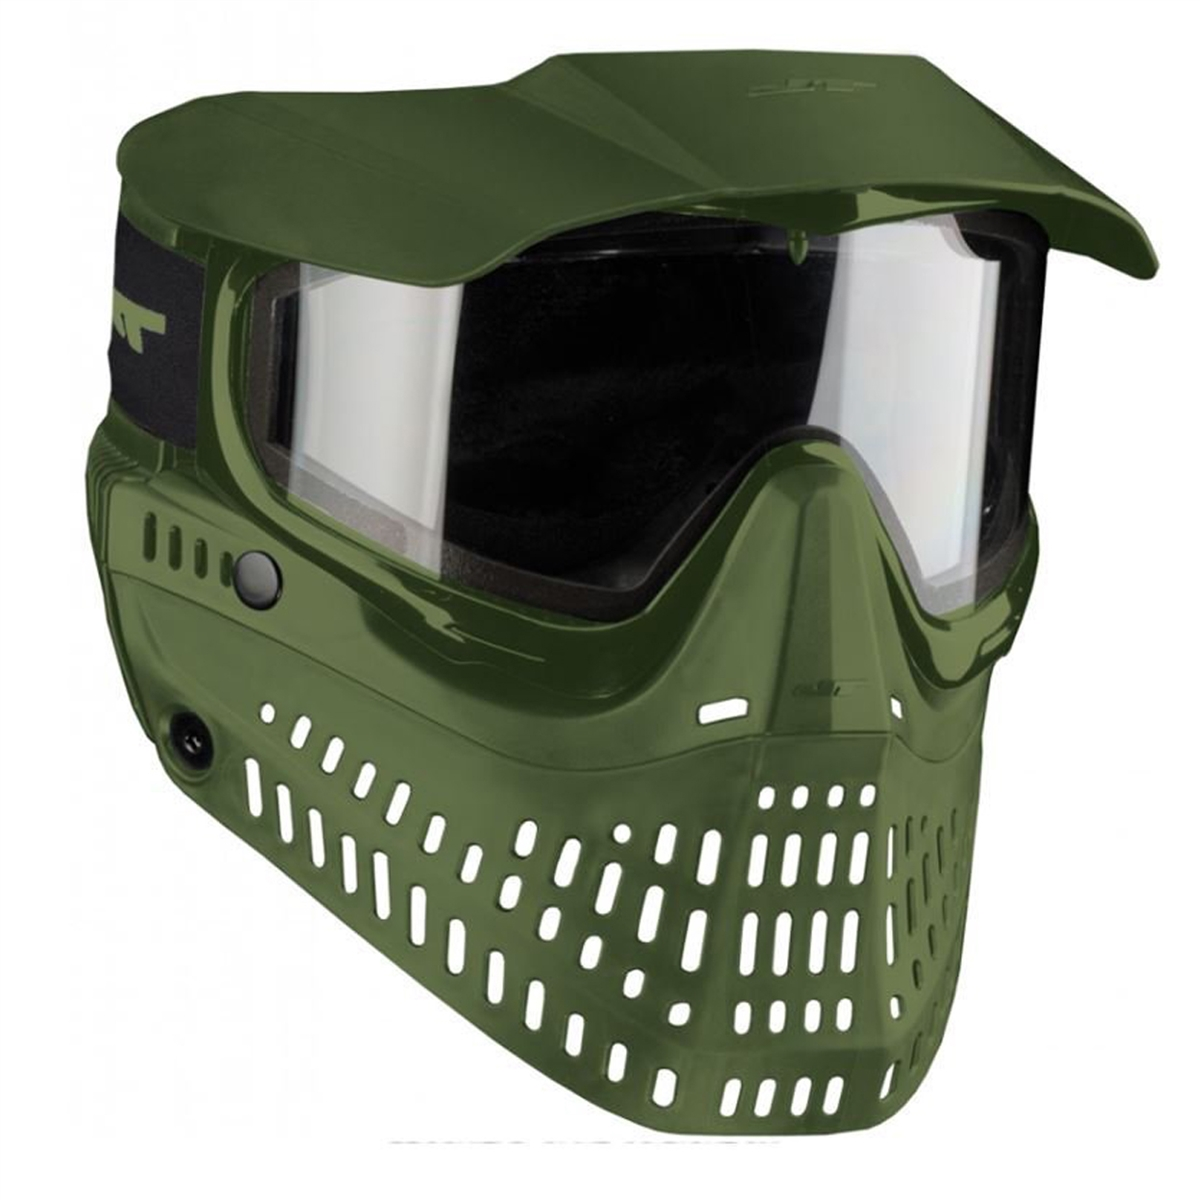 JT Spectra Proshield Paintball Mask w/Thermal Lens Goggles - OLIVE